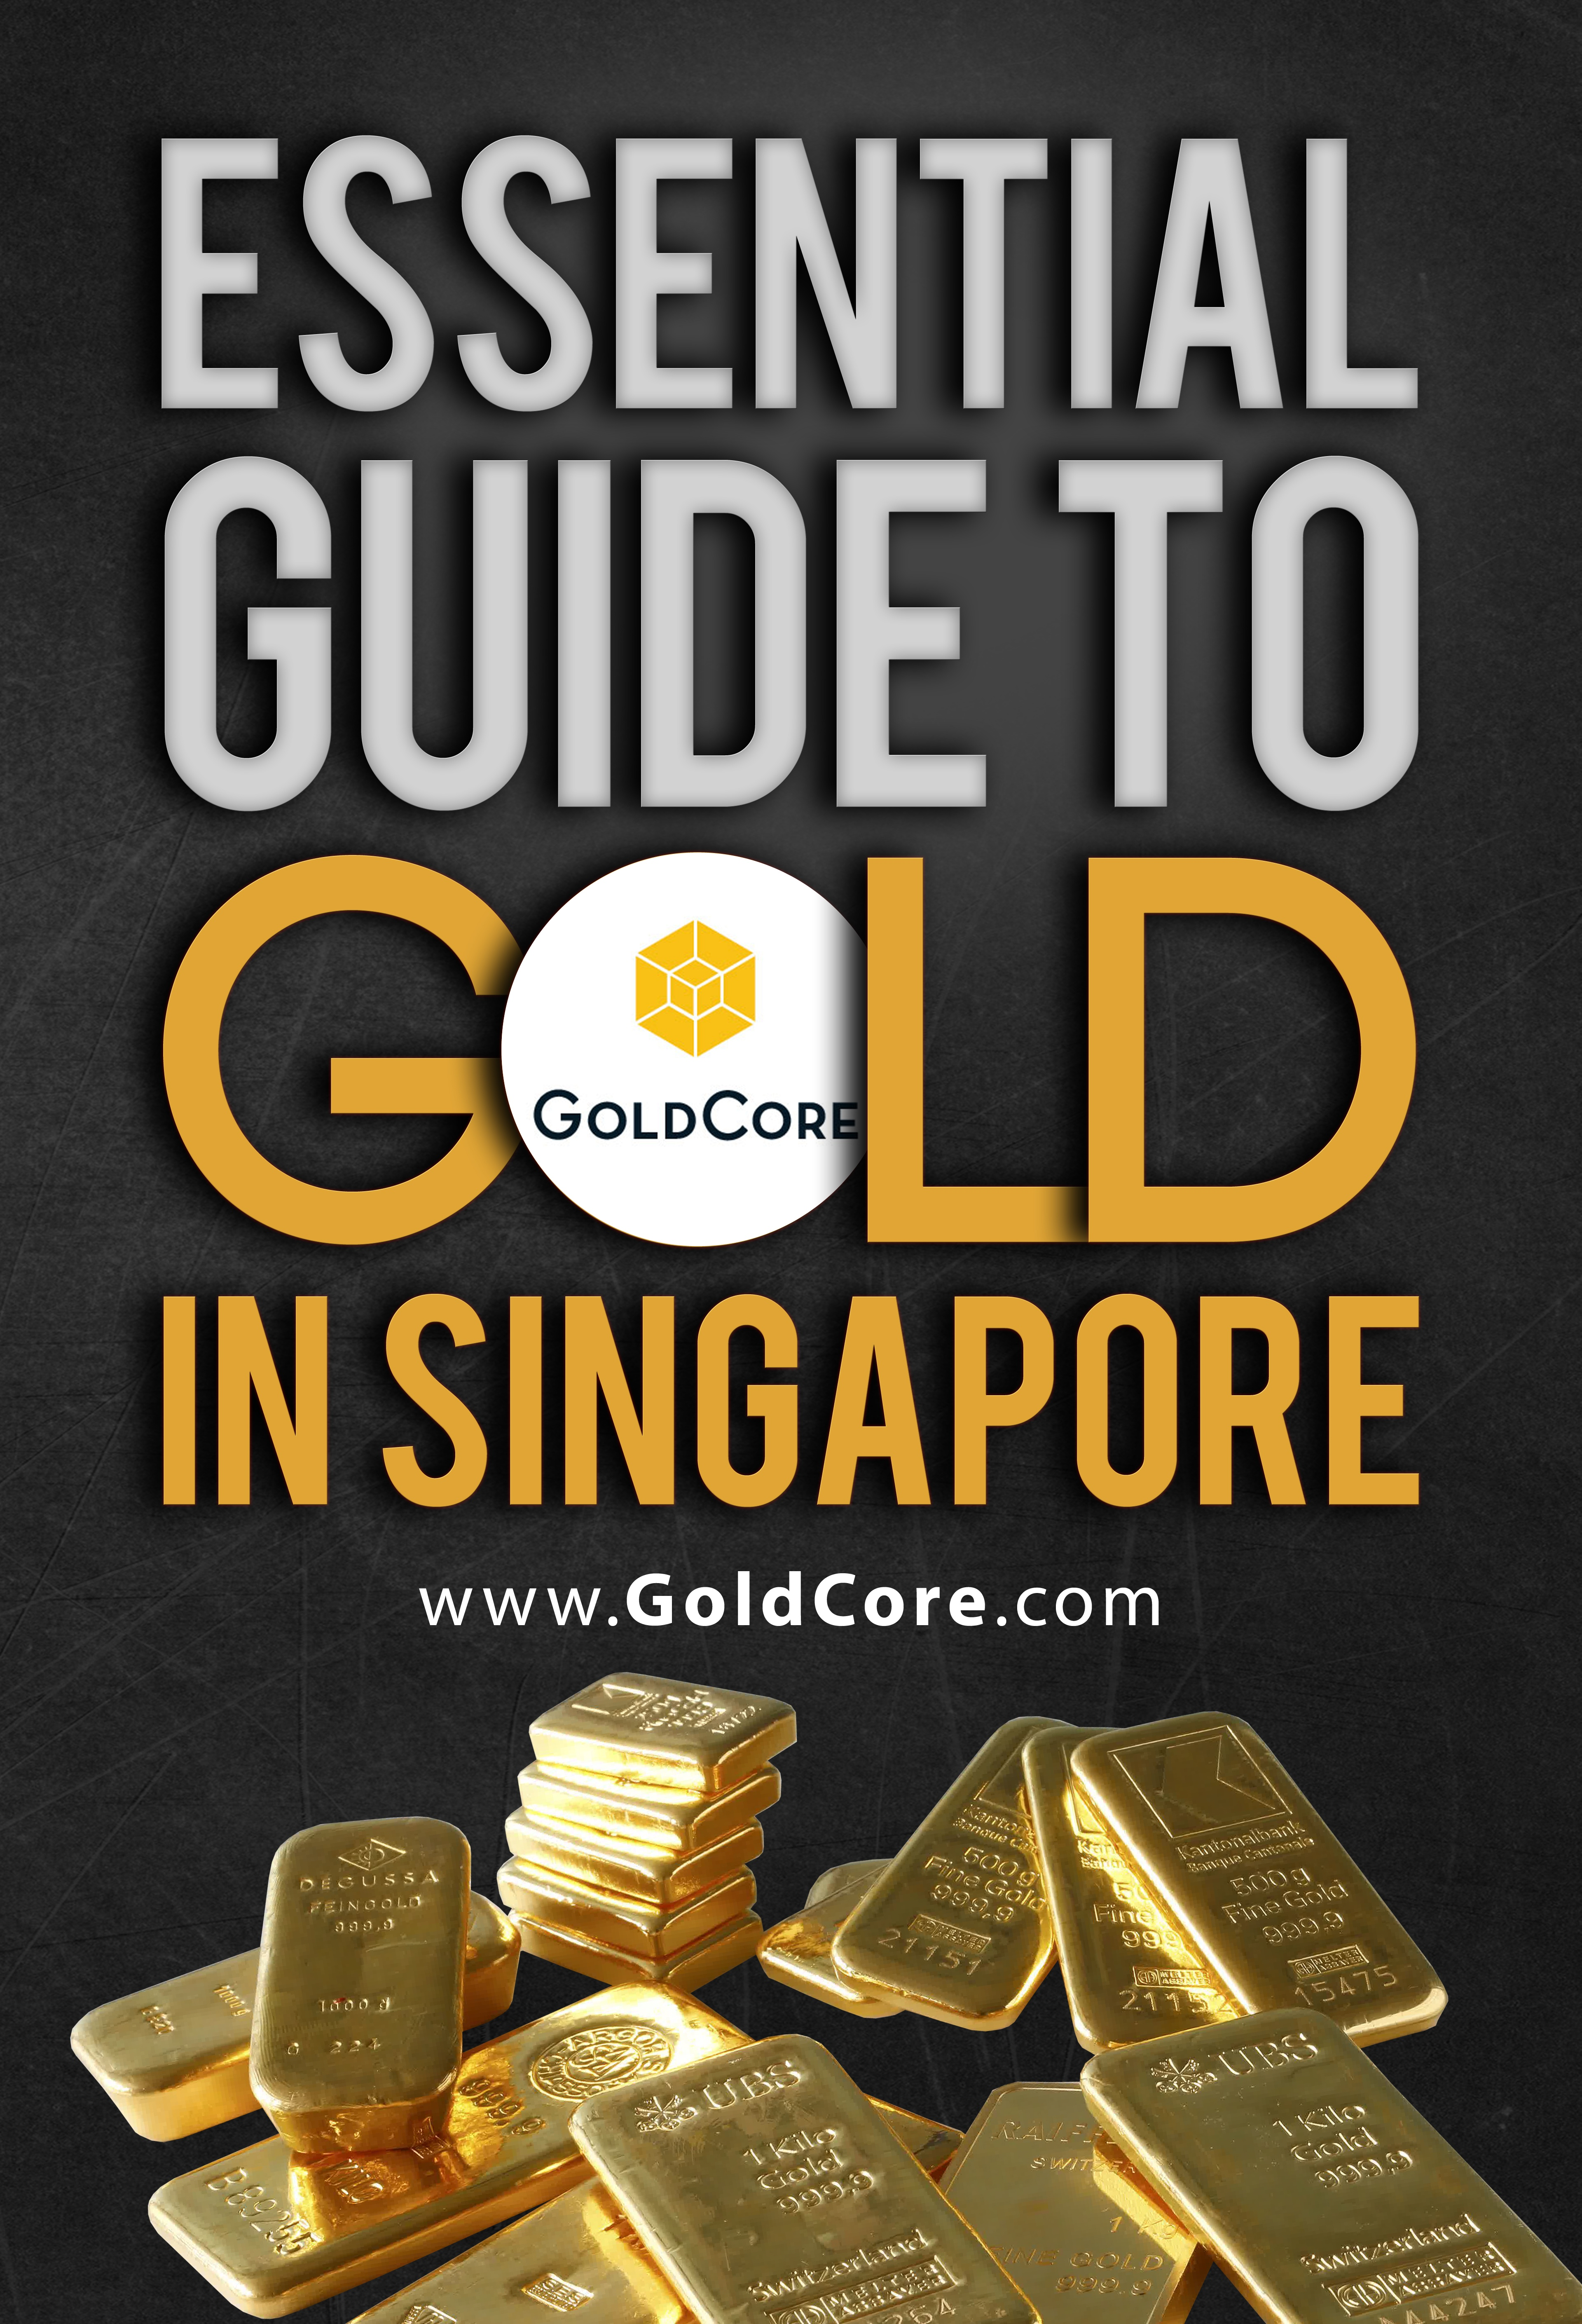 Essential_Guide_to_Storing_Gold_in_Singapore-1.jpg